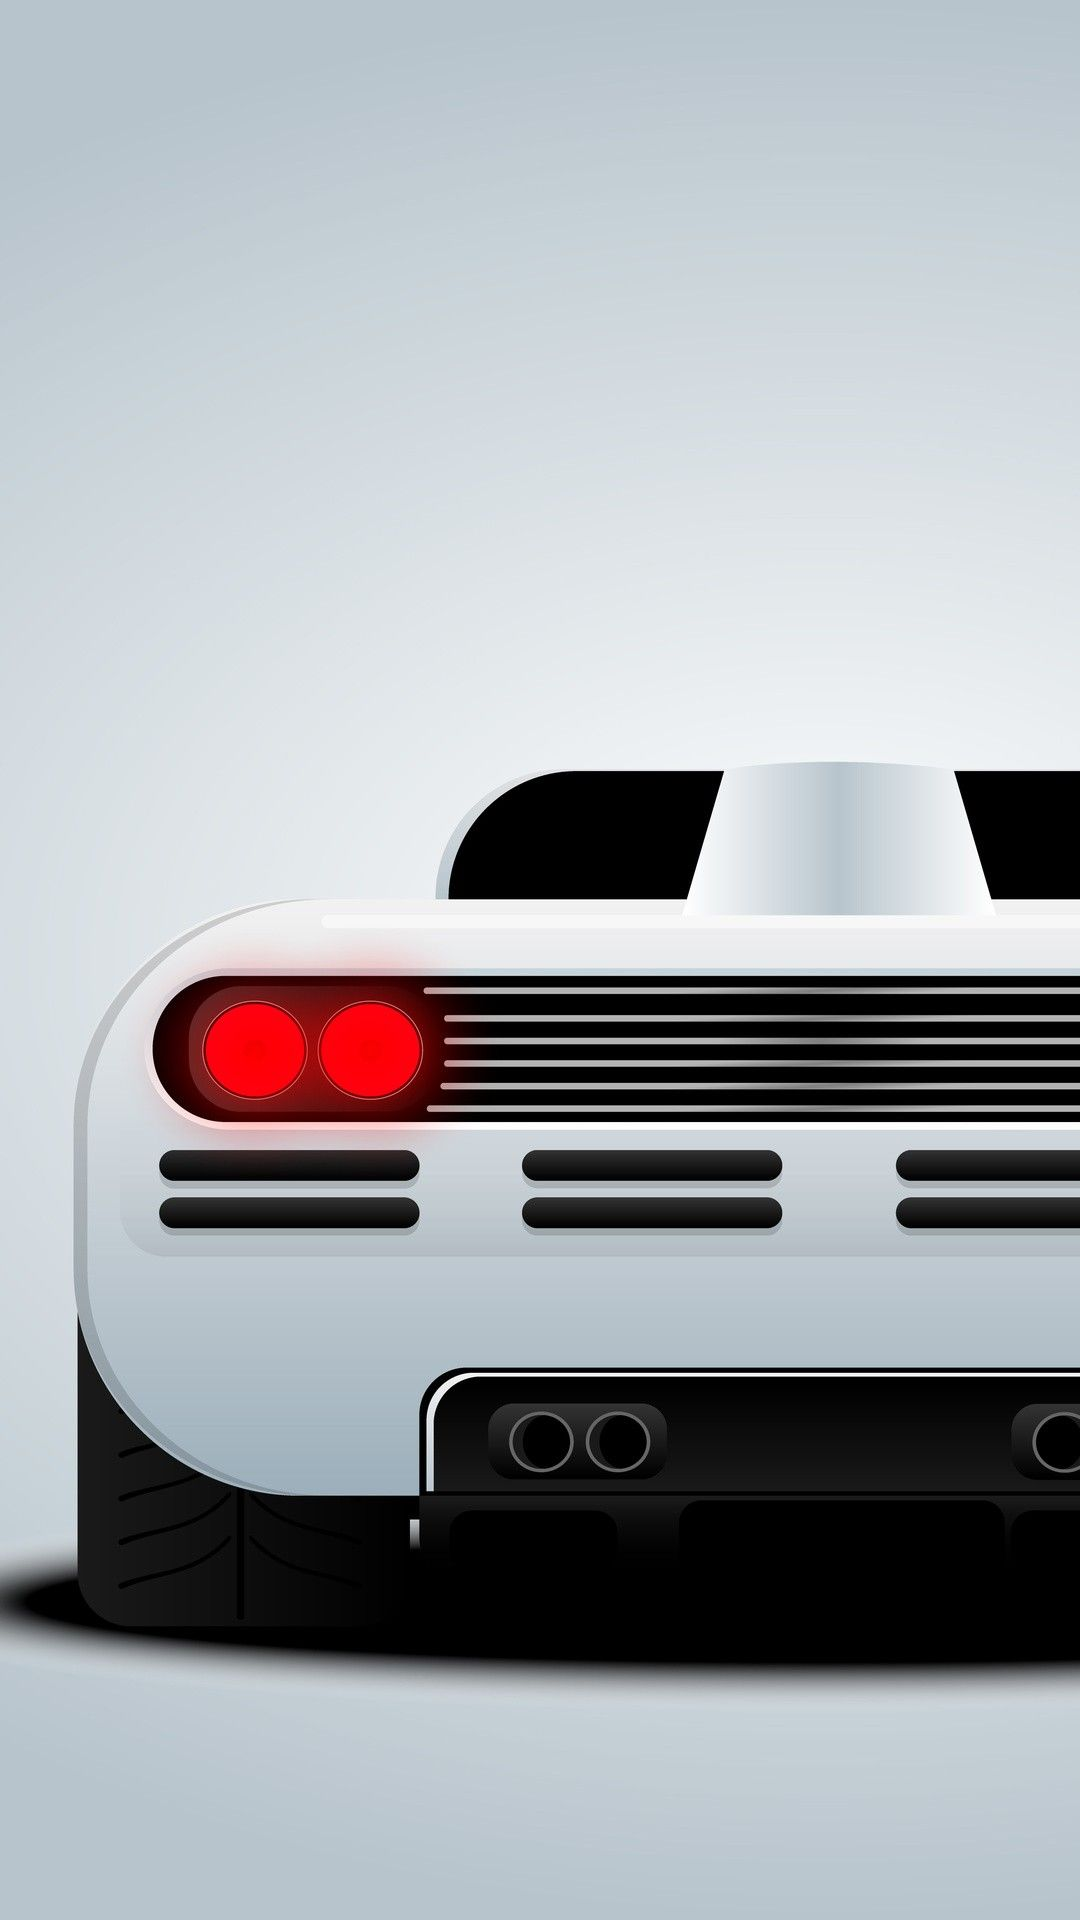 Collected 9083 car wallpapers and background picture for desktop & mobile. Minimalist Car Wallpapers Top Free Minimalist Car Backgrounds Wallpaperaccess